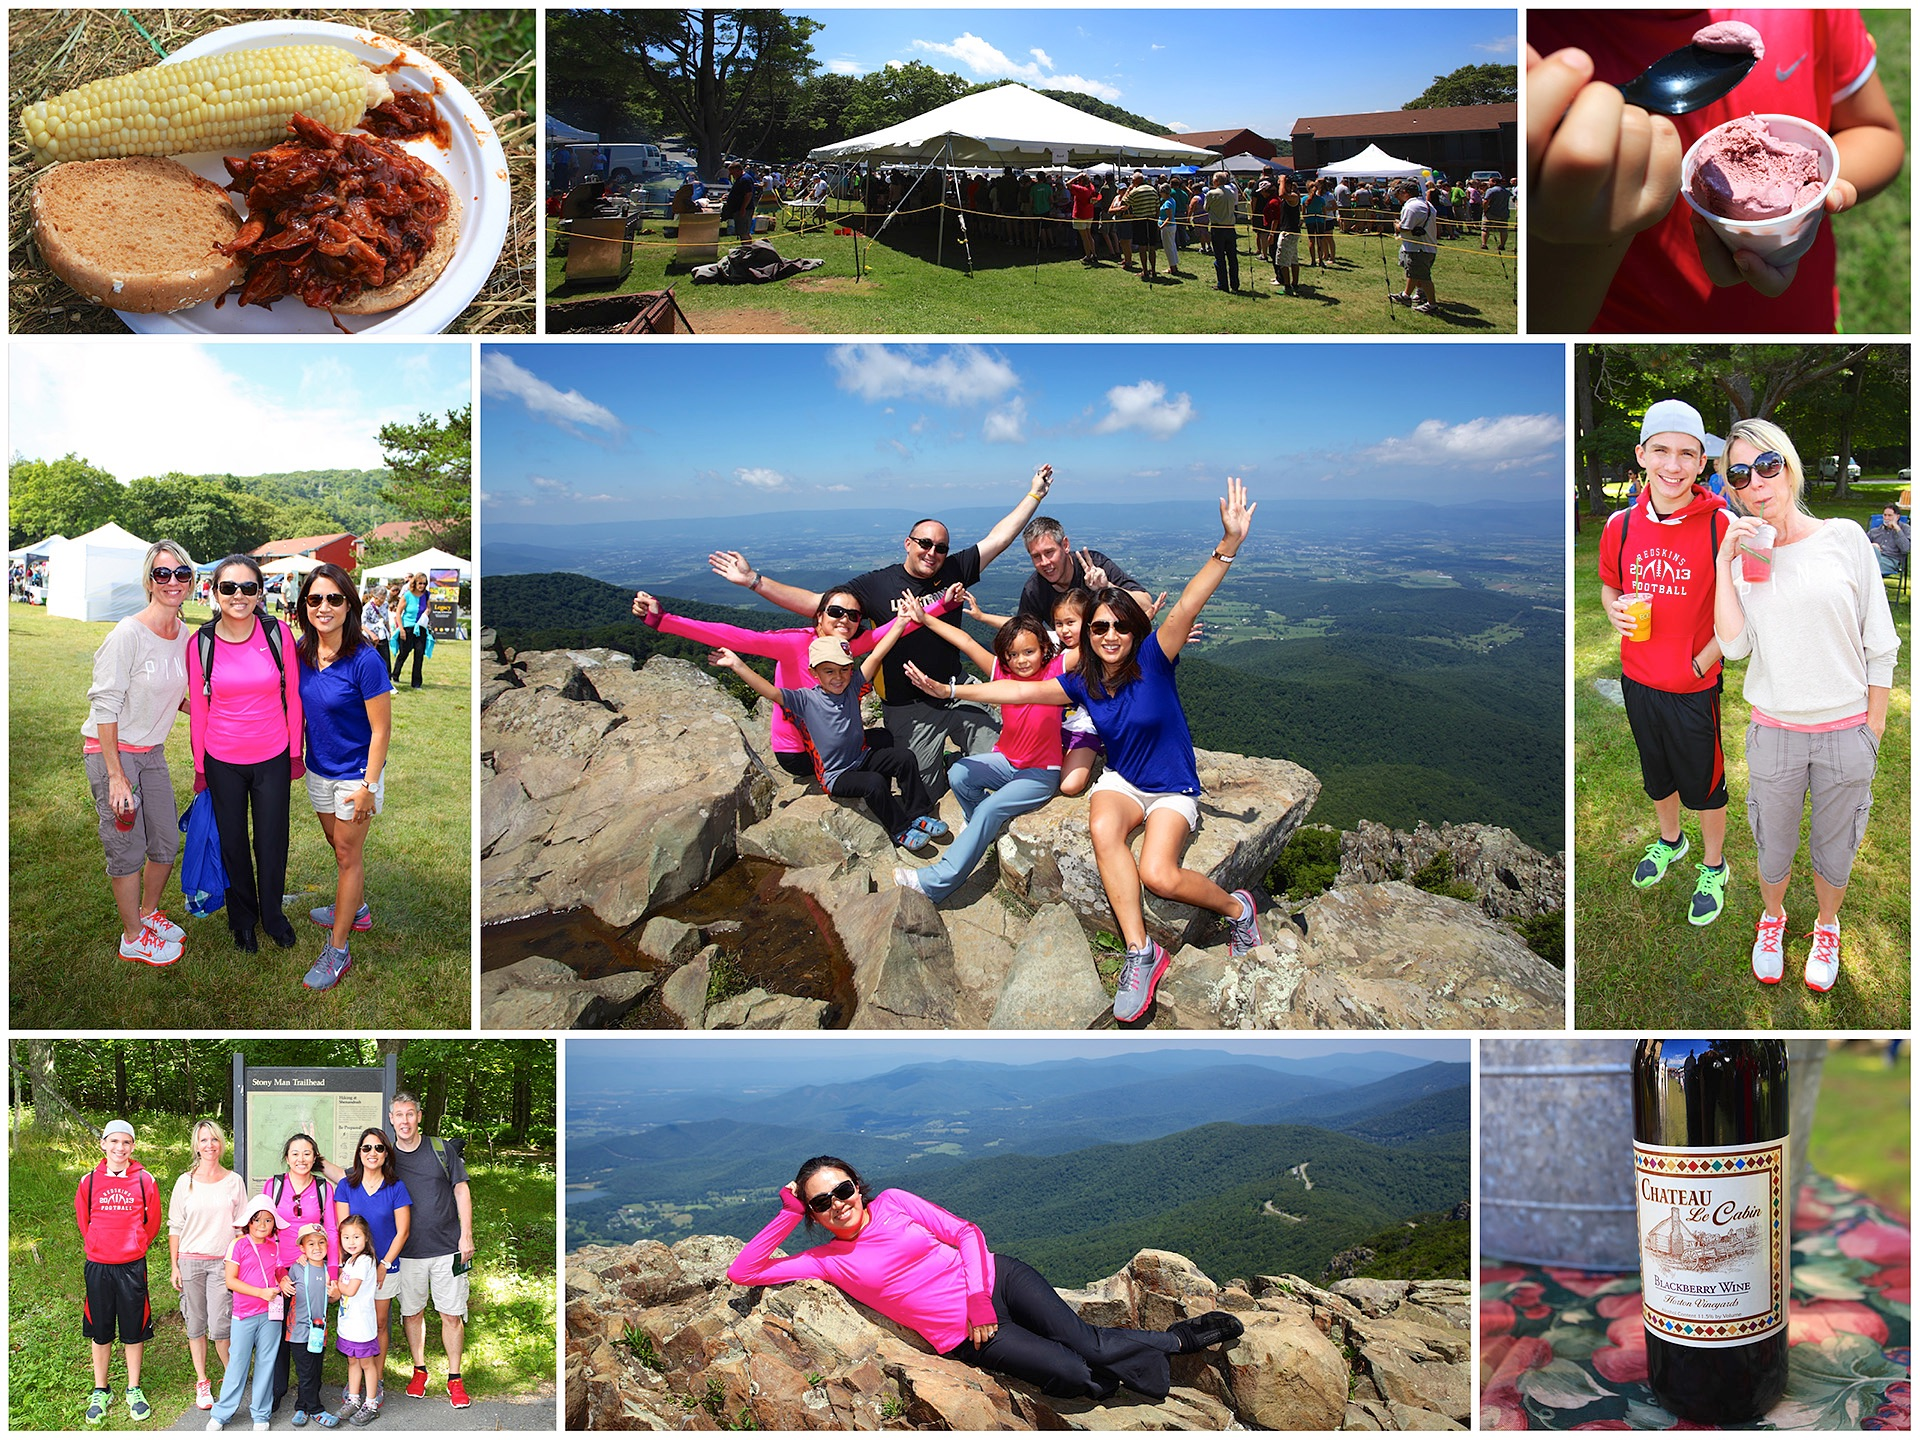 The annual Blackberry Festival at Shenandoah National Park in 2014, with some very near and dear friends.